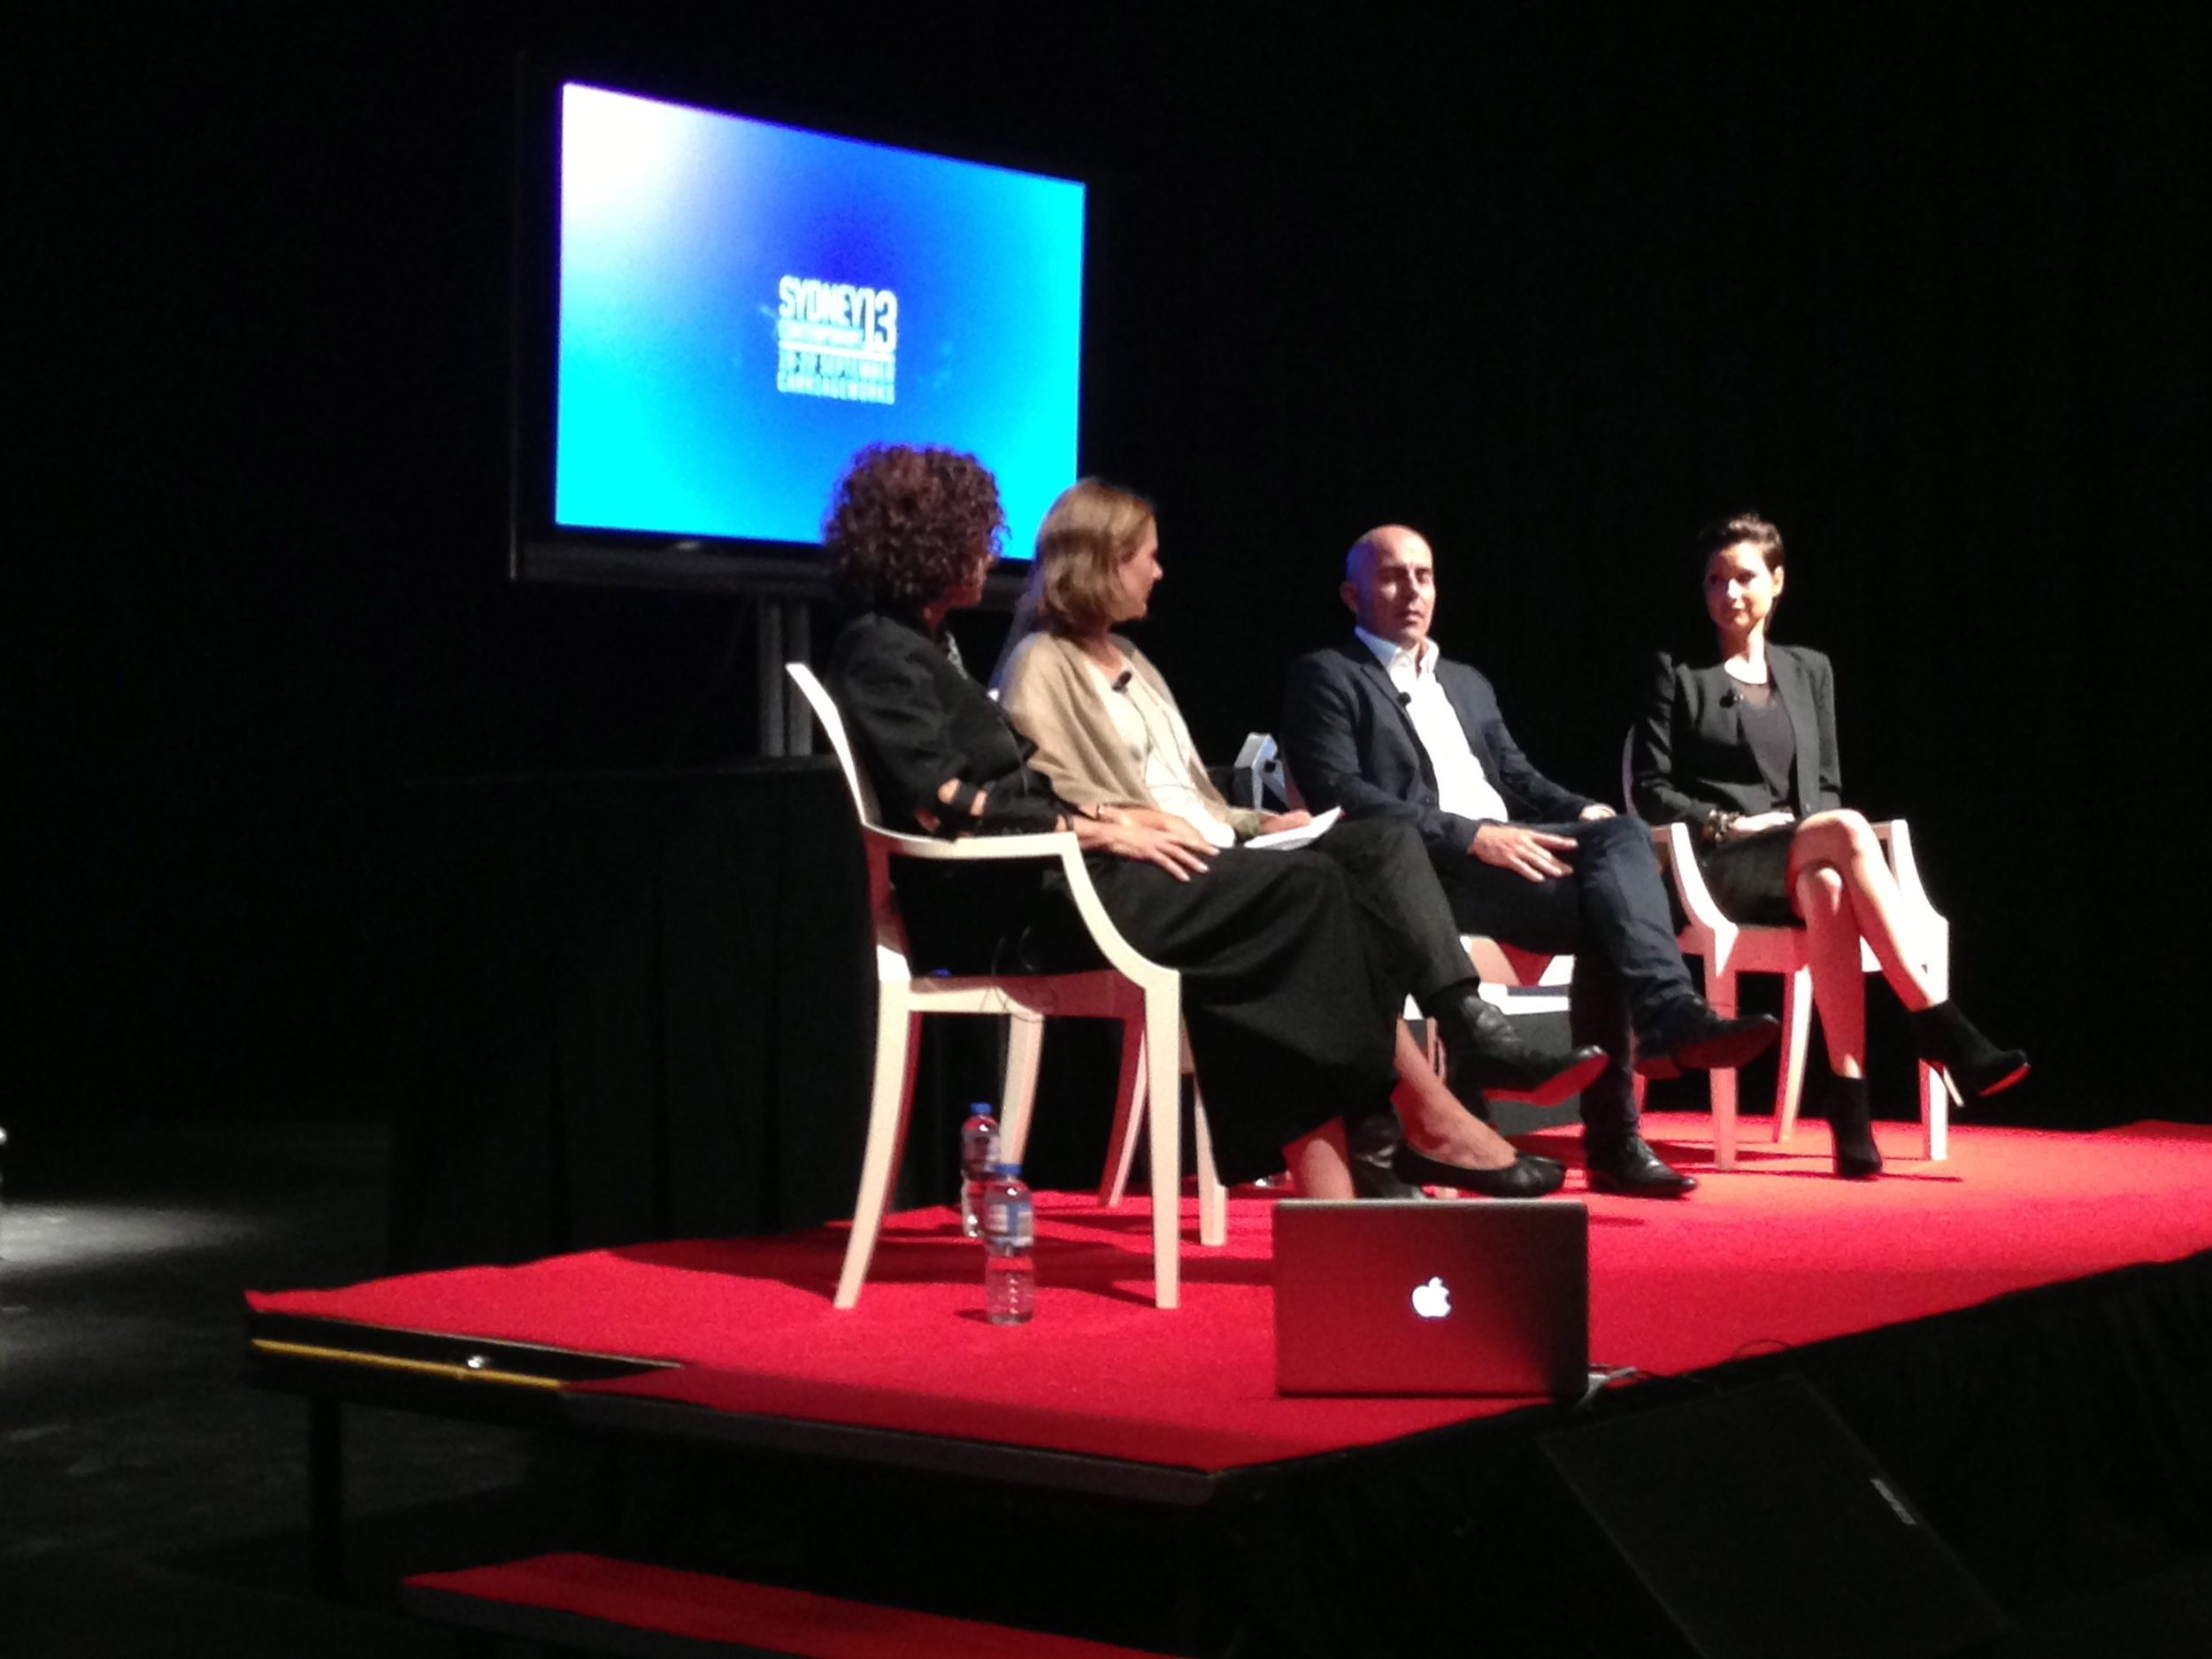 Australia v's The Rest of the World , panel discussion, SC13